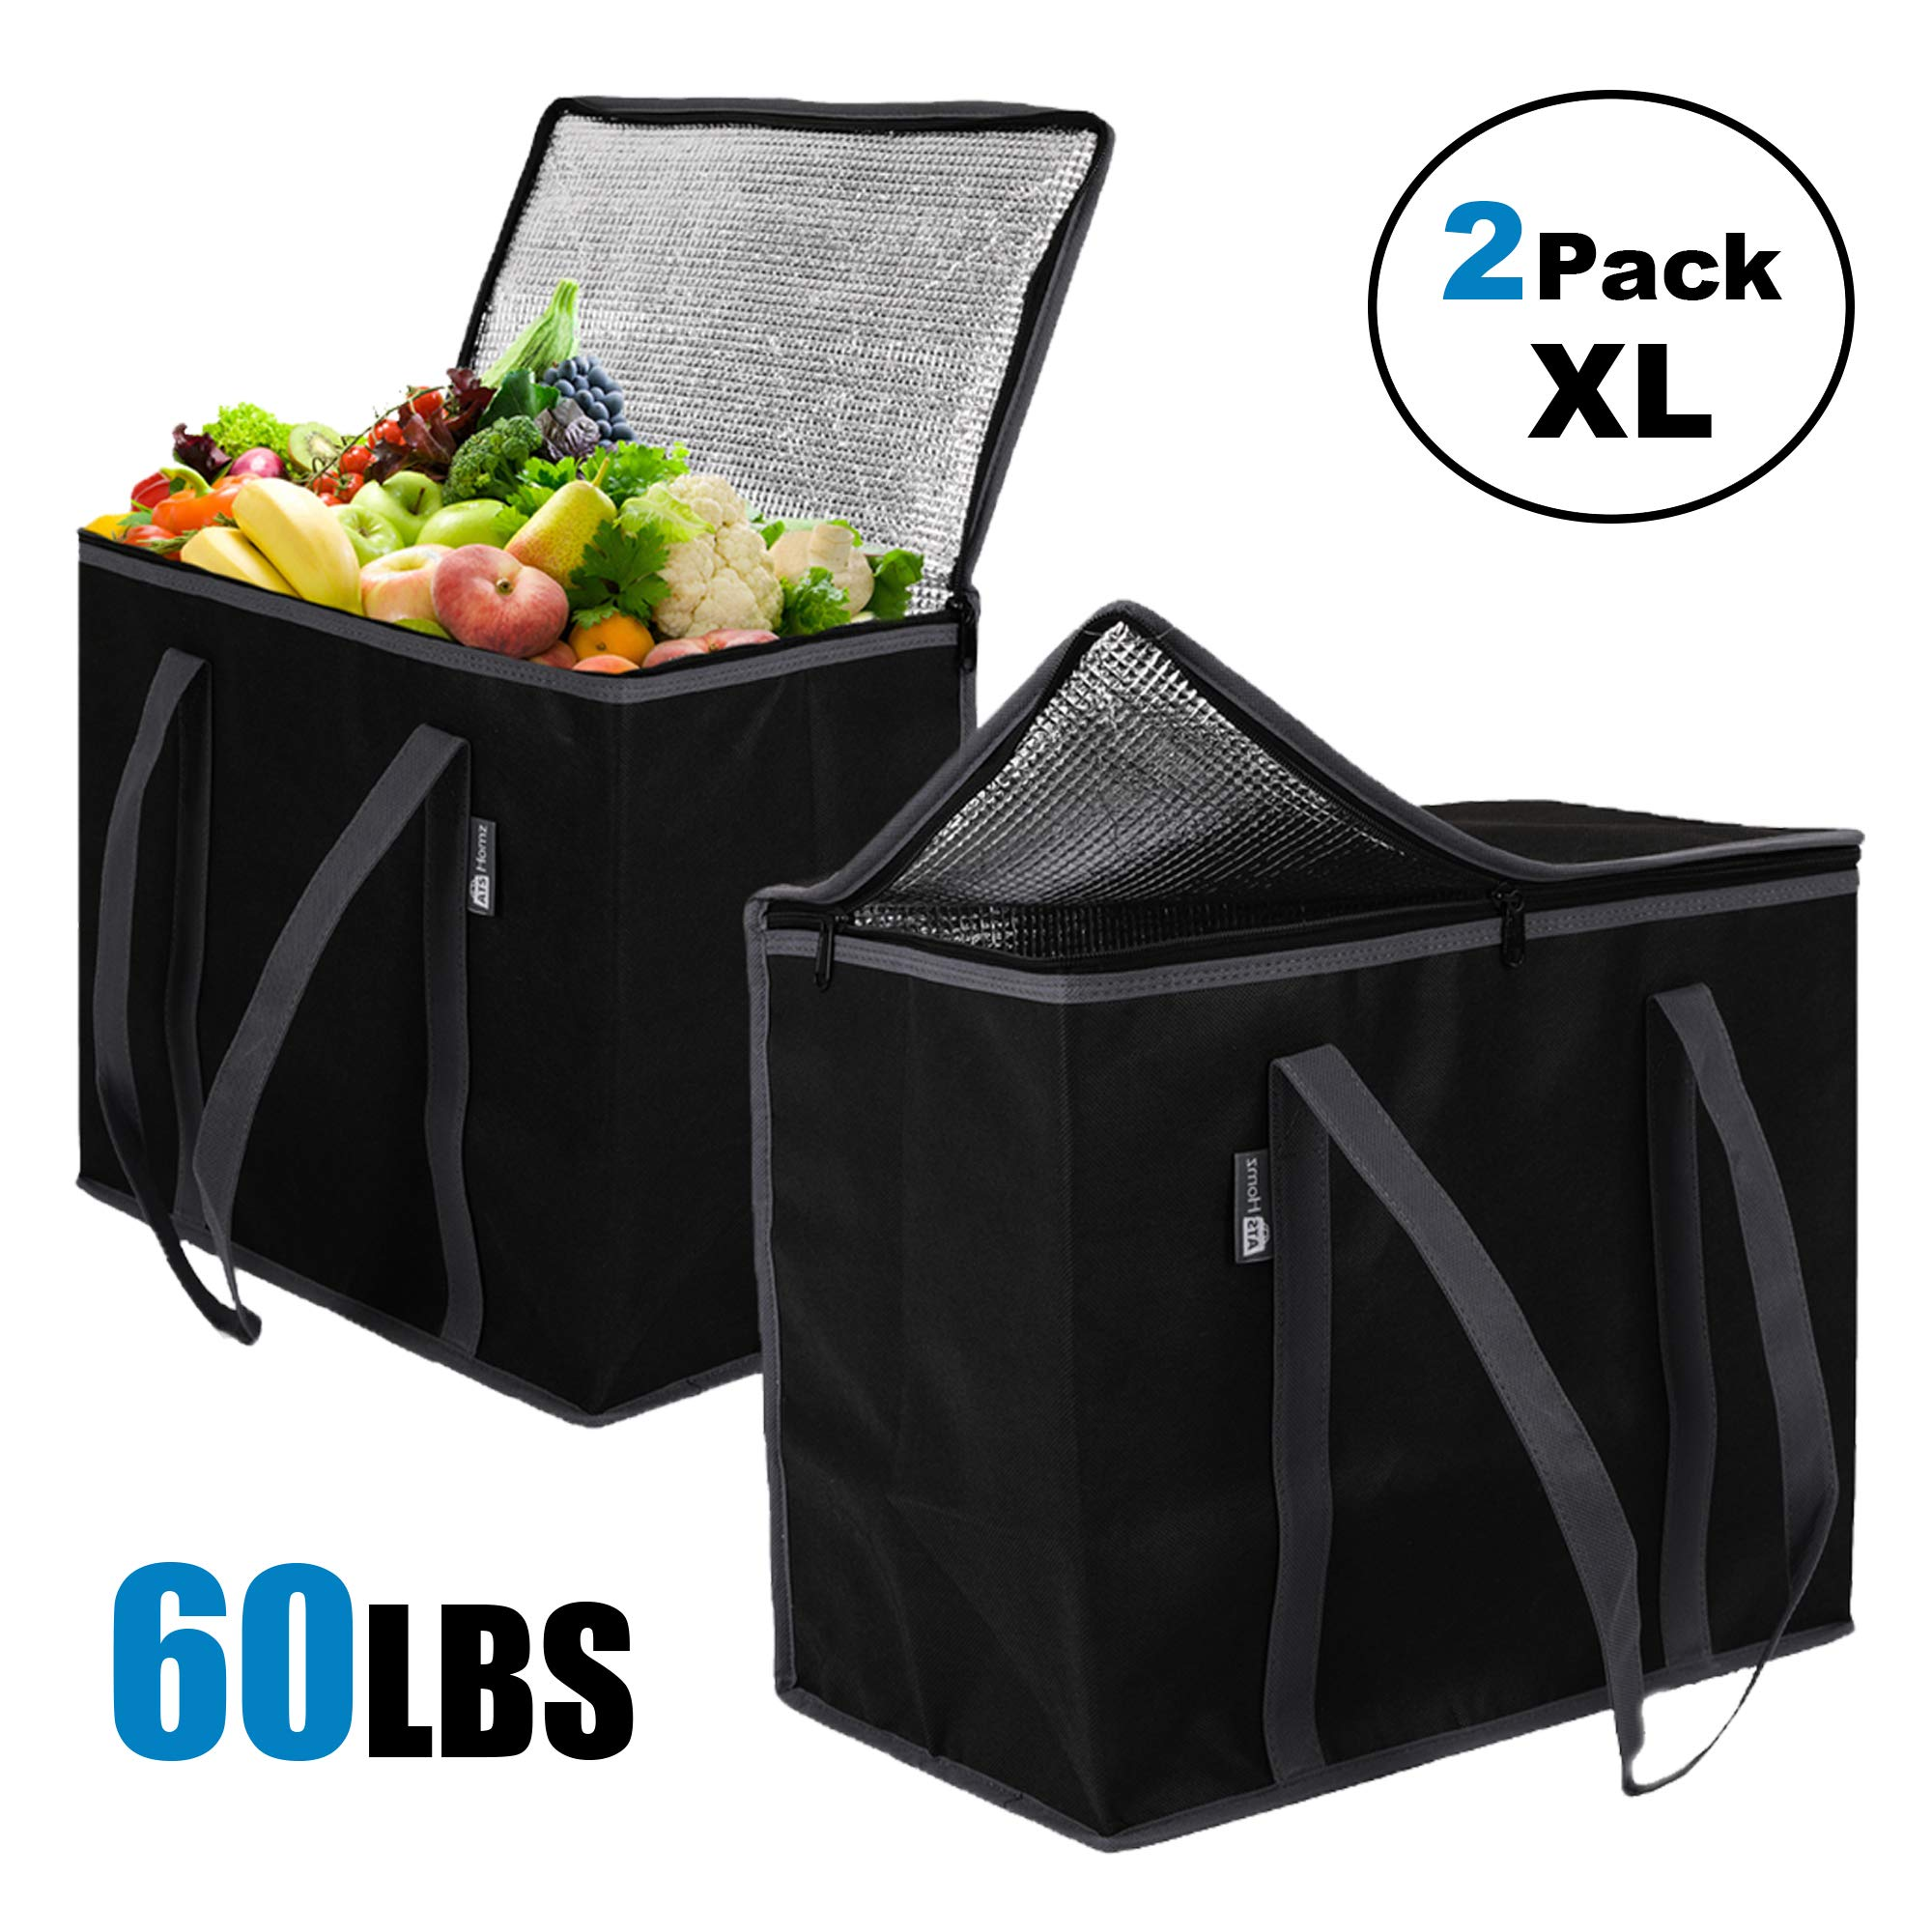 ATS Homz 2 Pack XL Insulated Grocery Bag: Eco Friendly Heavy Duty Foldable Shopping Storage Zipper Tote Bag for Hot and Cold Reusable Shopping Catering, Frozen Food Transport Delivery, Travel, Picnic